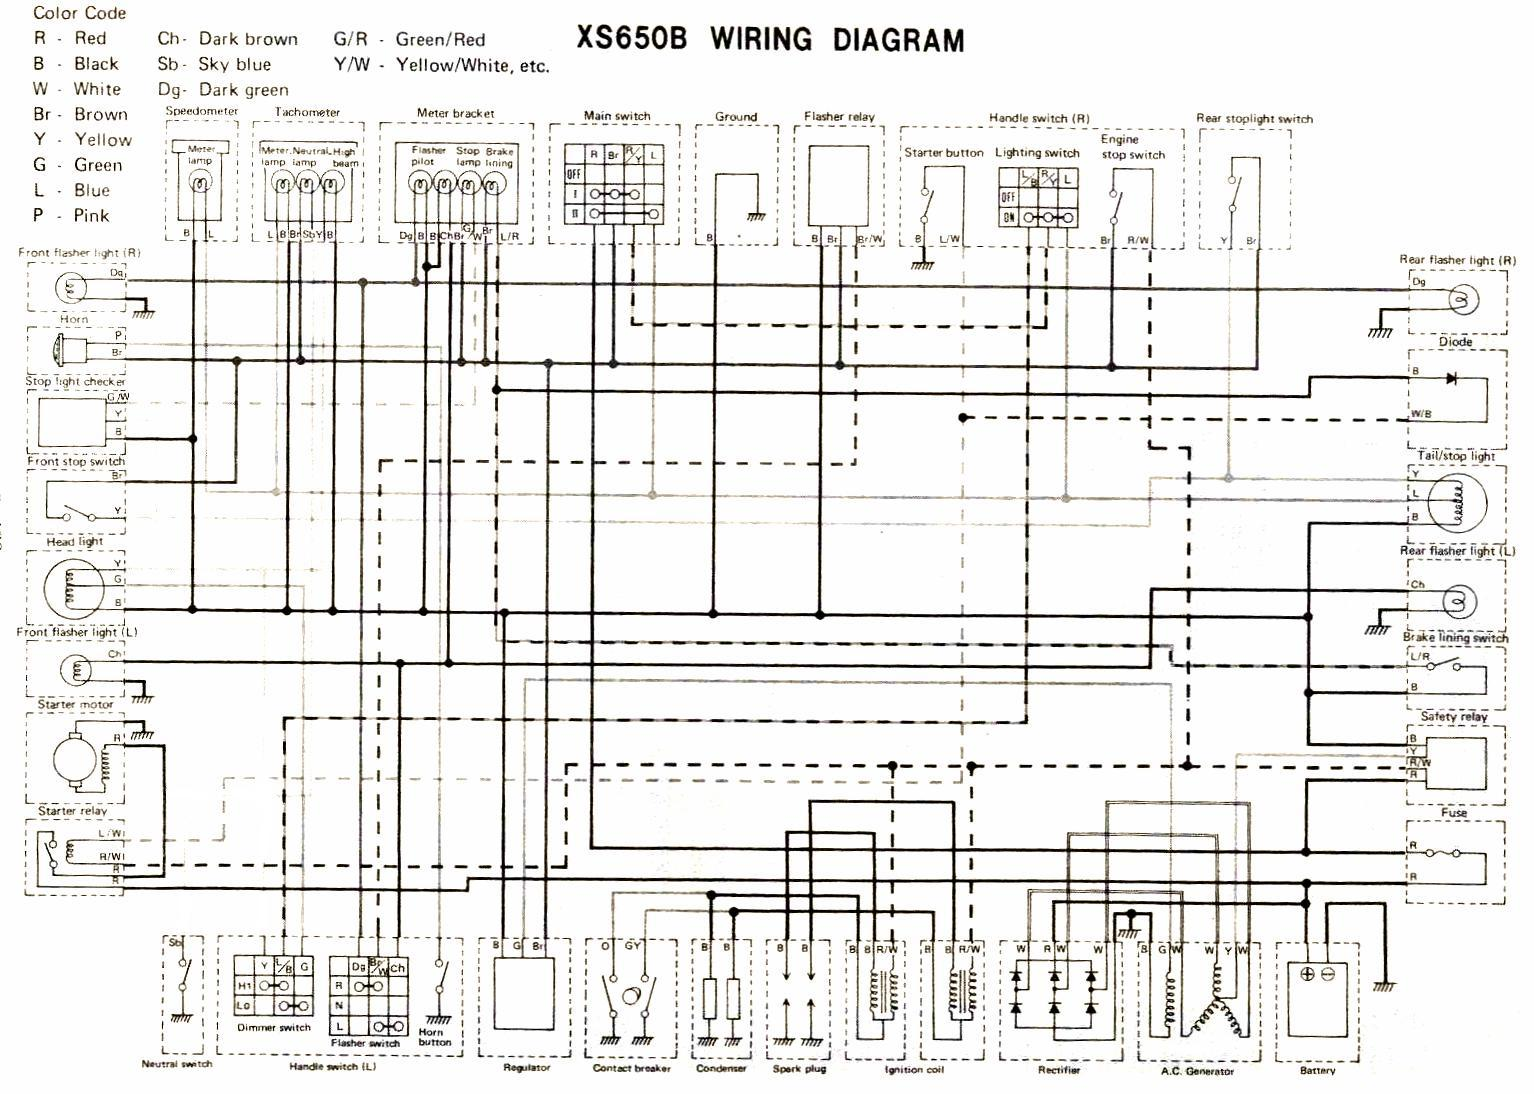 75XS650B wiring diagrams 1980 xs650 wiring diagram at readyjetset.co